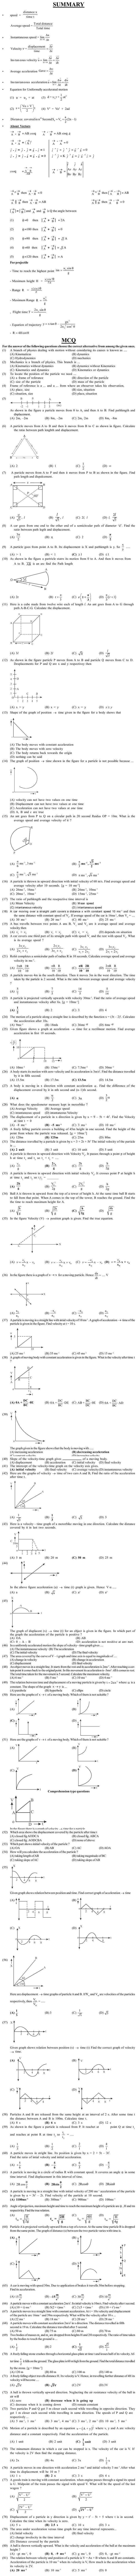 Physics Question Bank For Entrance Exam Kinematics Physics Questions Physics Physics Notes